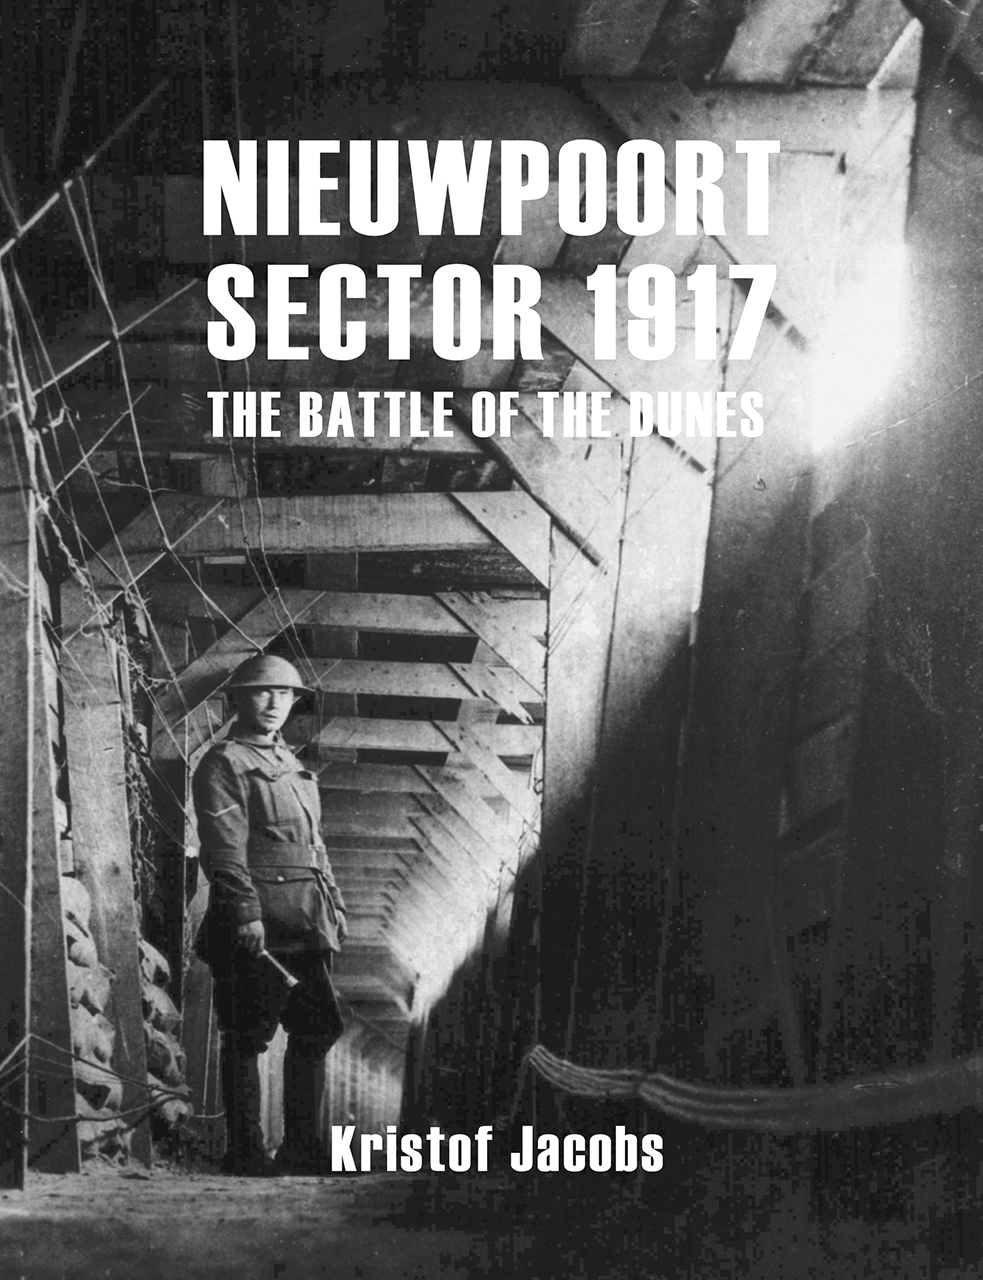 Nieuwpoort Sector 1917: The Battle of the Dunes